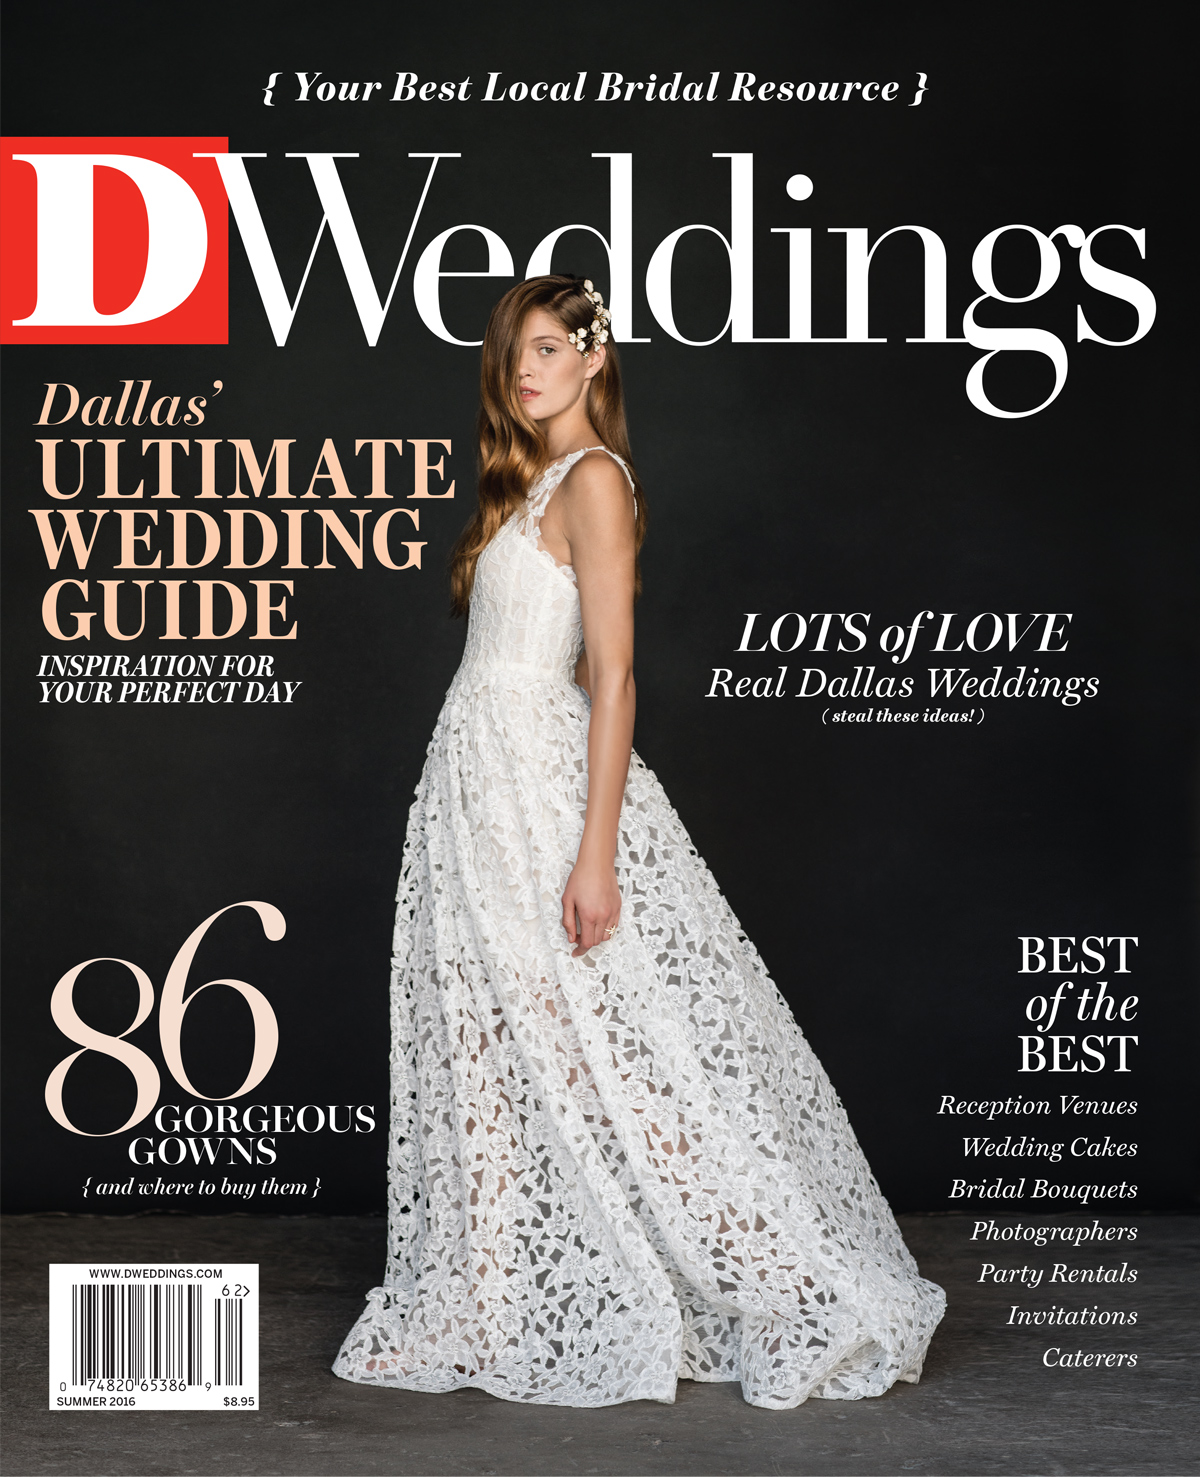 DWeddings-SS-Cover